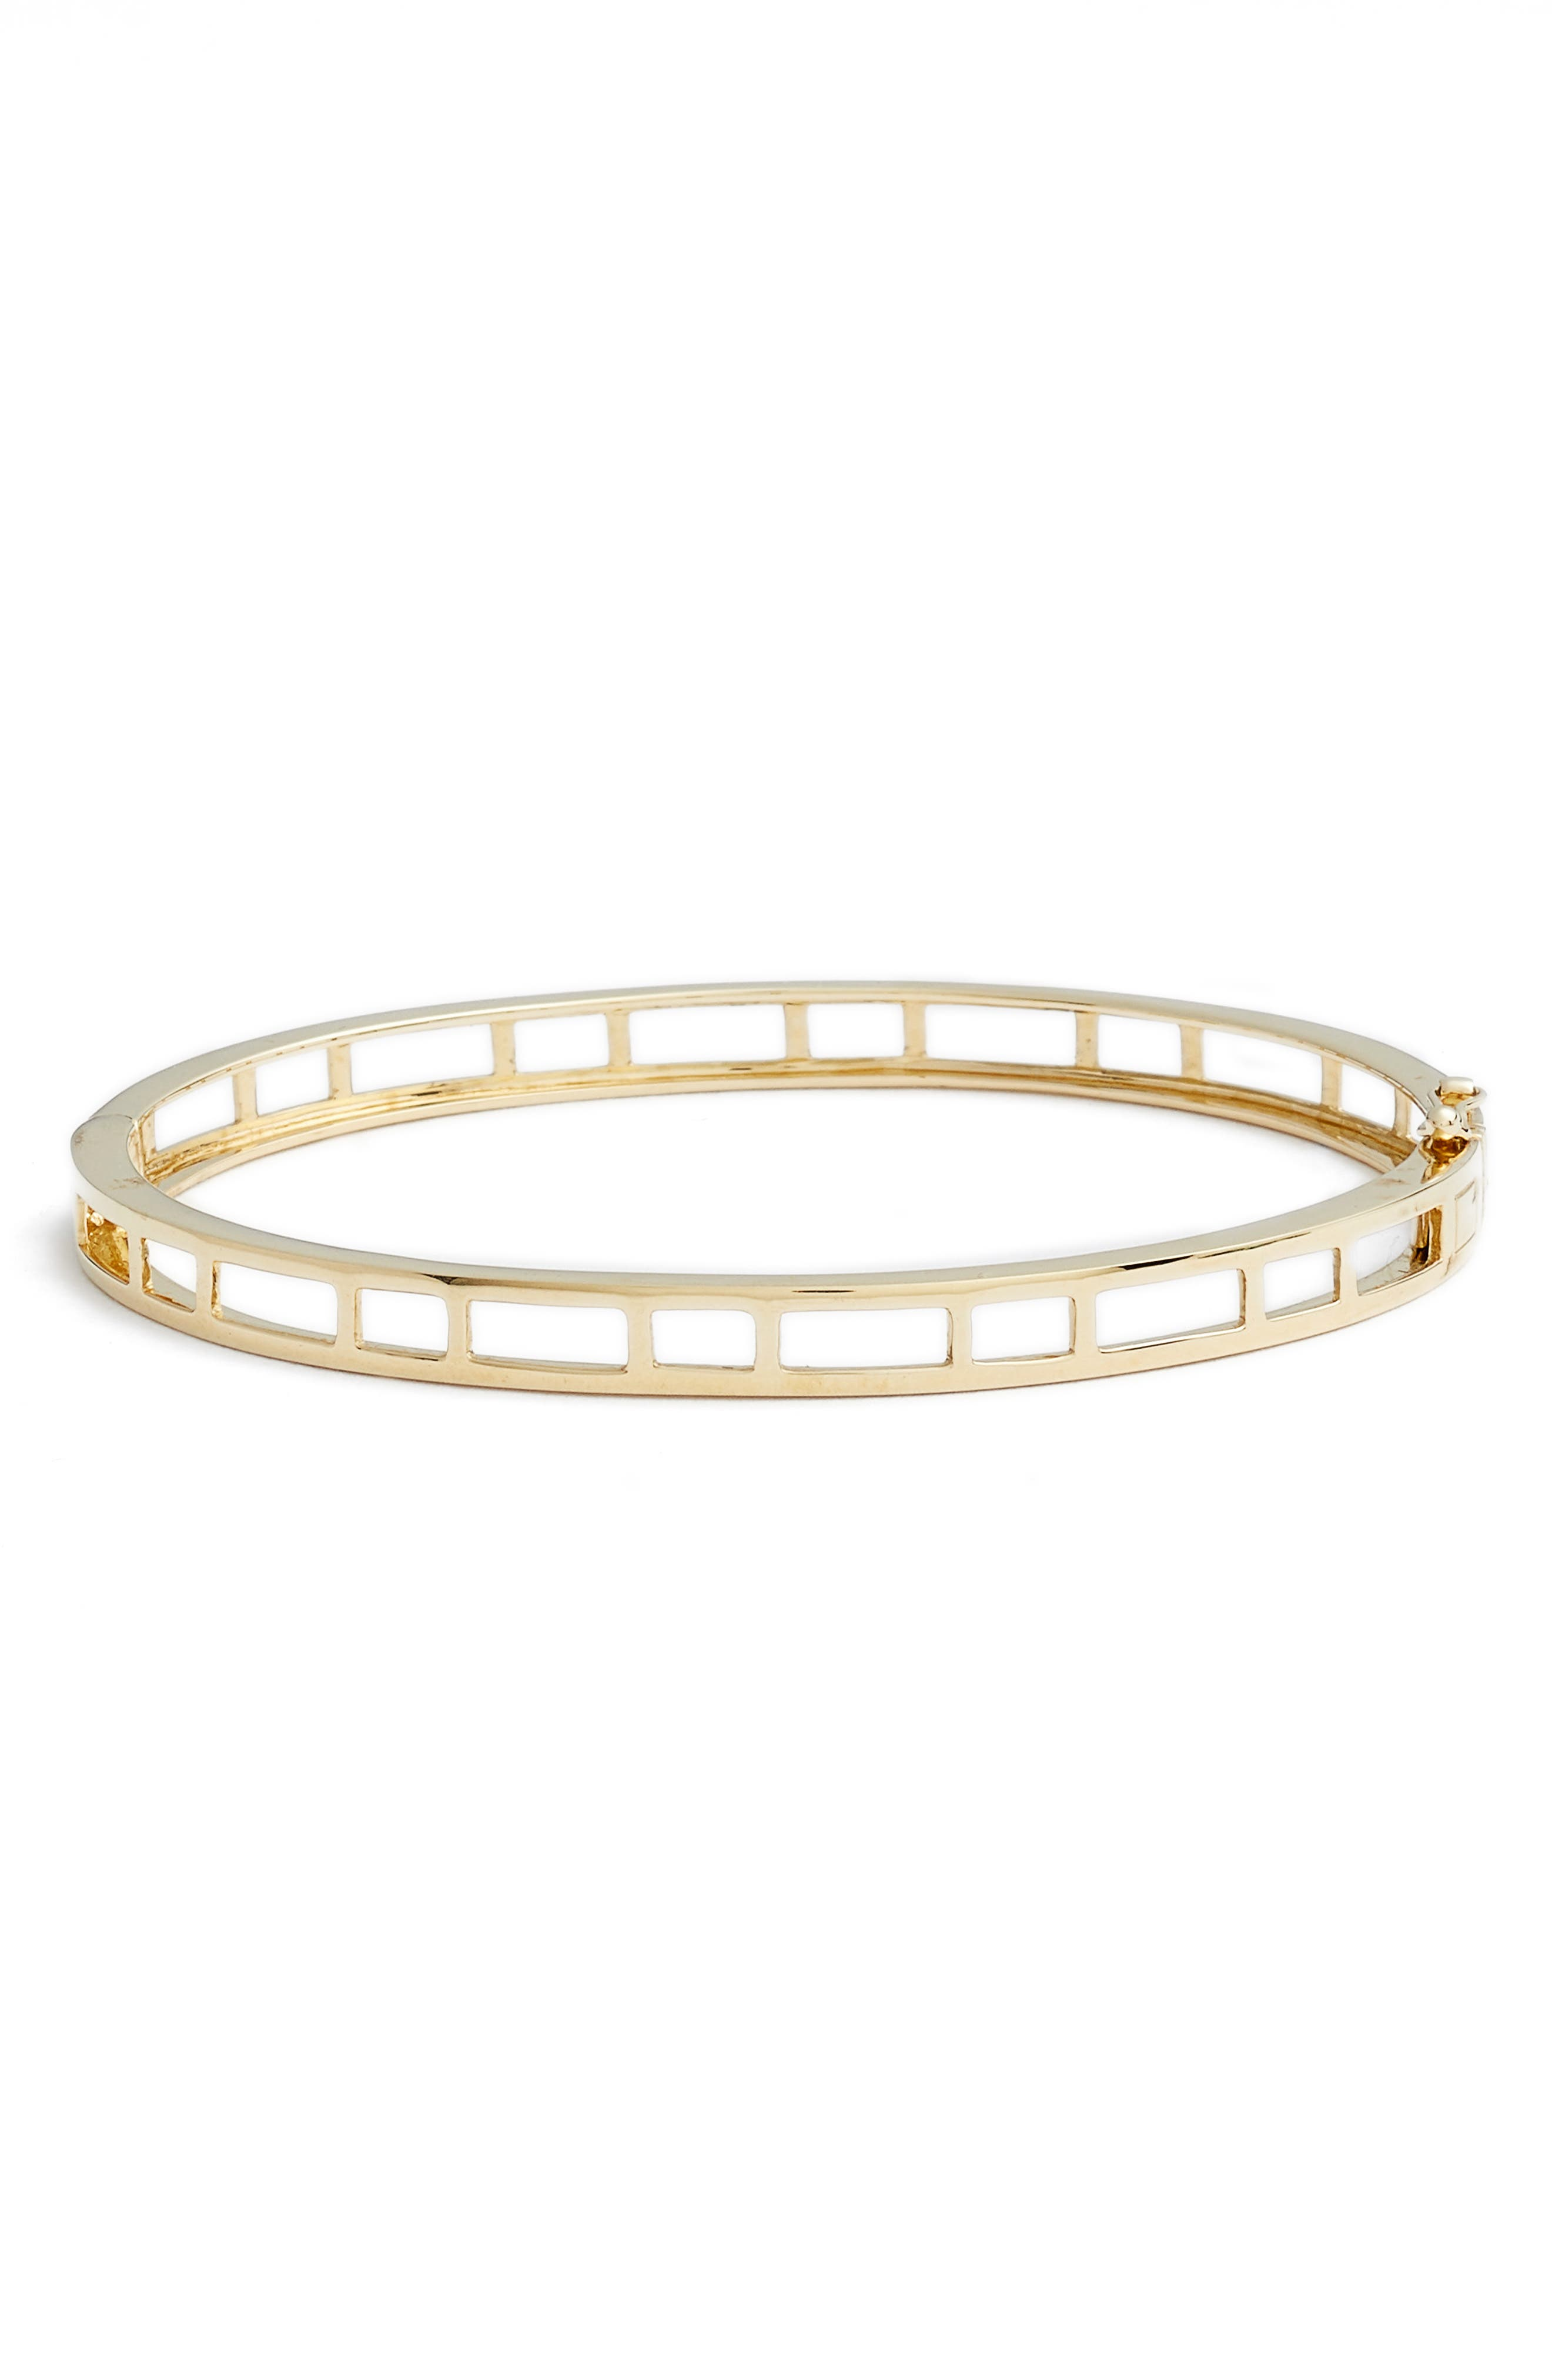 14k Caged Bangle,                         Main,                         color, Yellow Gold